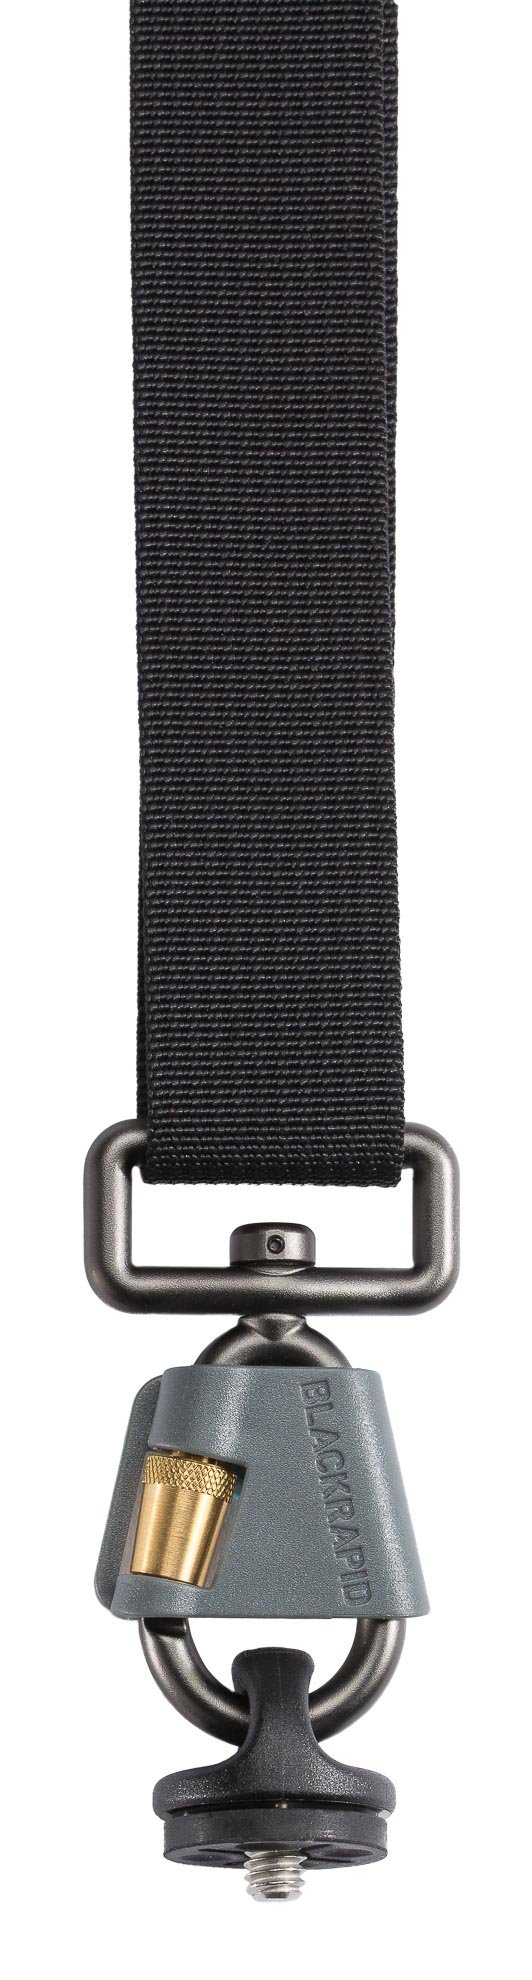 BLACKRAPID Classic Retro (RS4) Camera Strap, 1pc of Safety Tether Included - 10th Anniversary Edition by BlackRapid (Image #4)